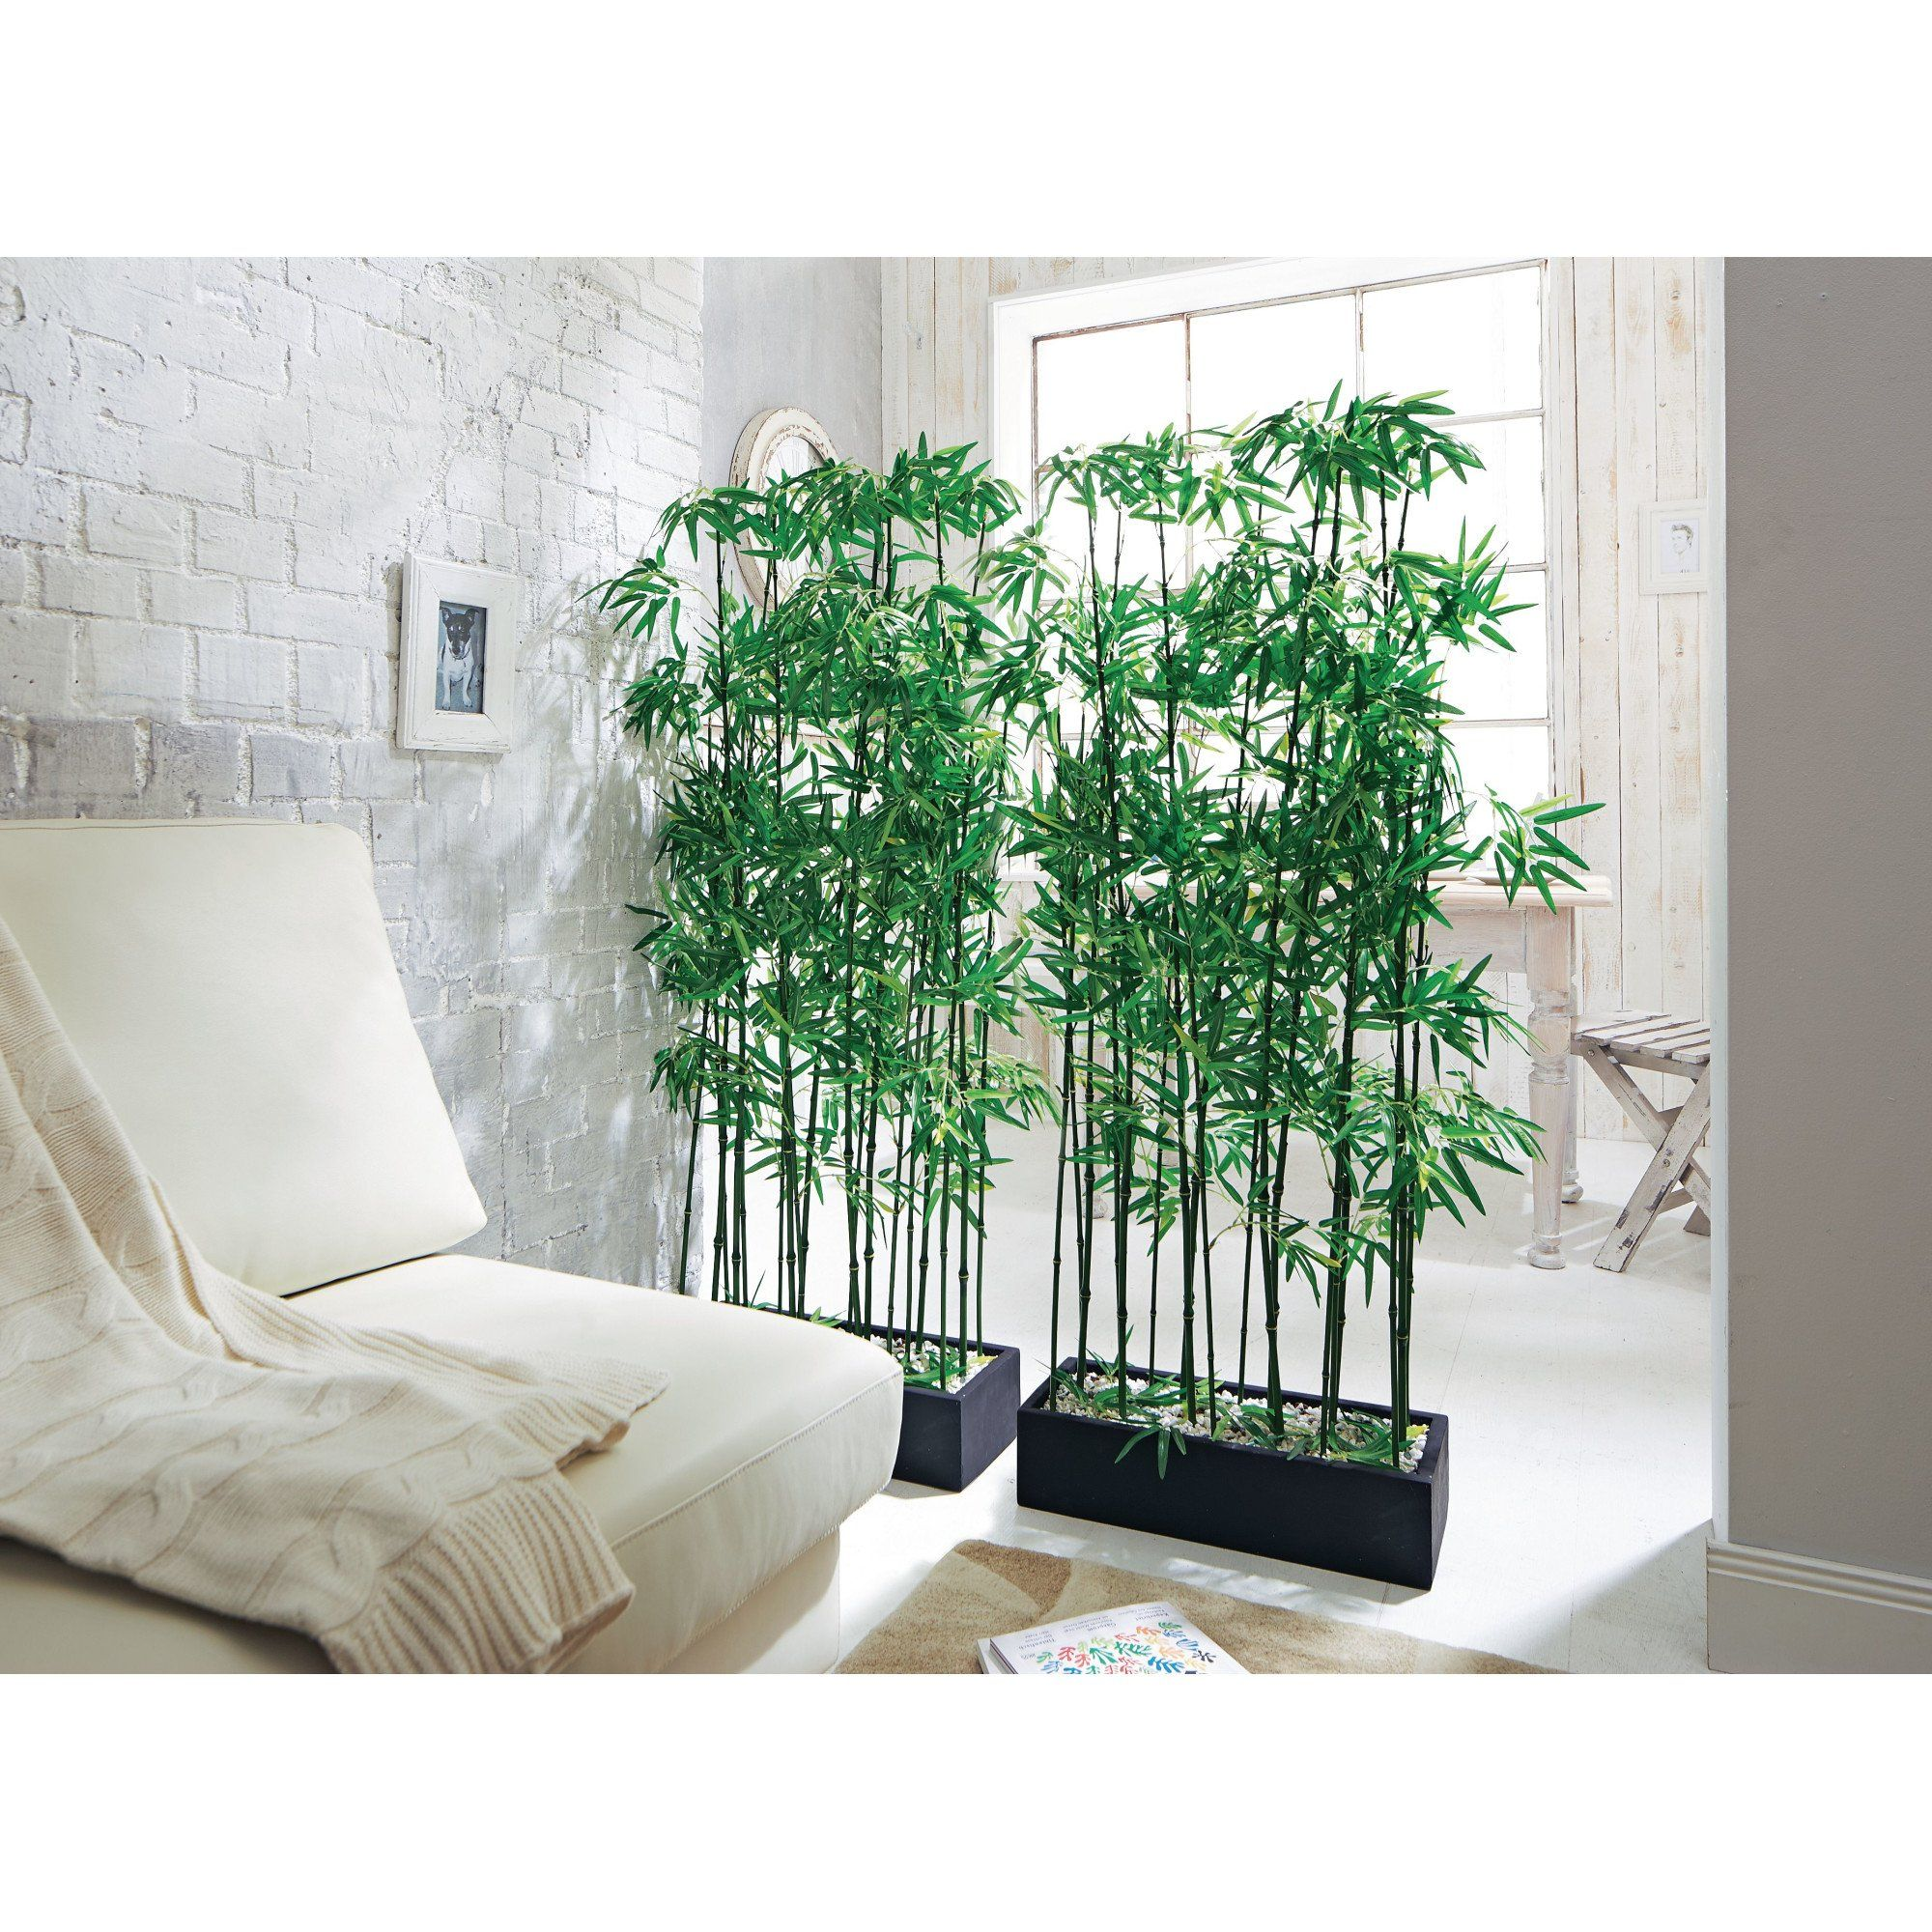 Artificial Bamboo Plant Room Divider Approx 140 Cm High Kitchen Home Room